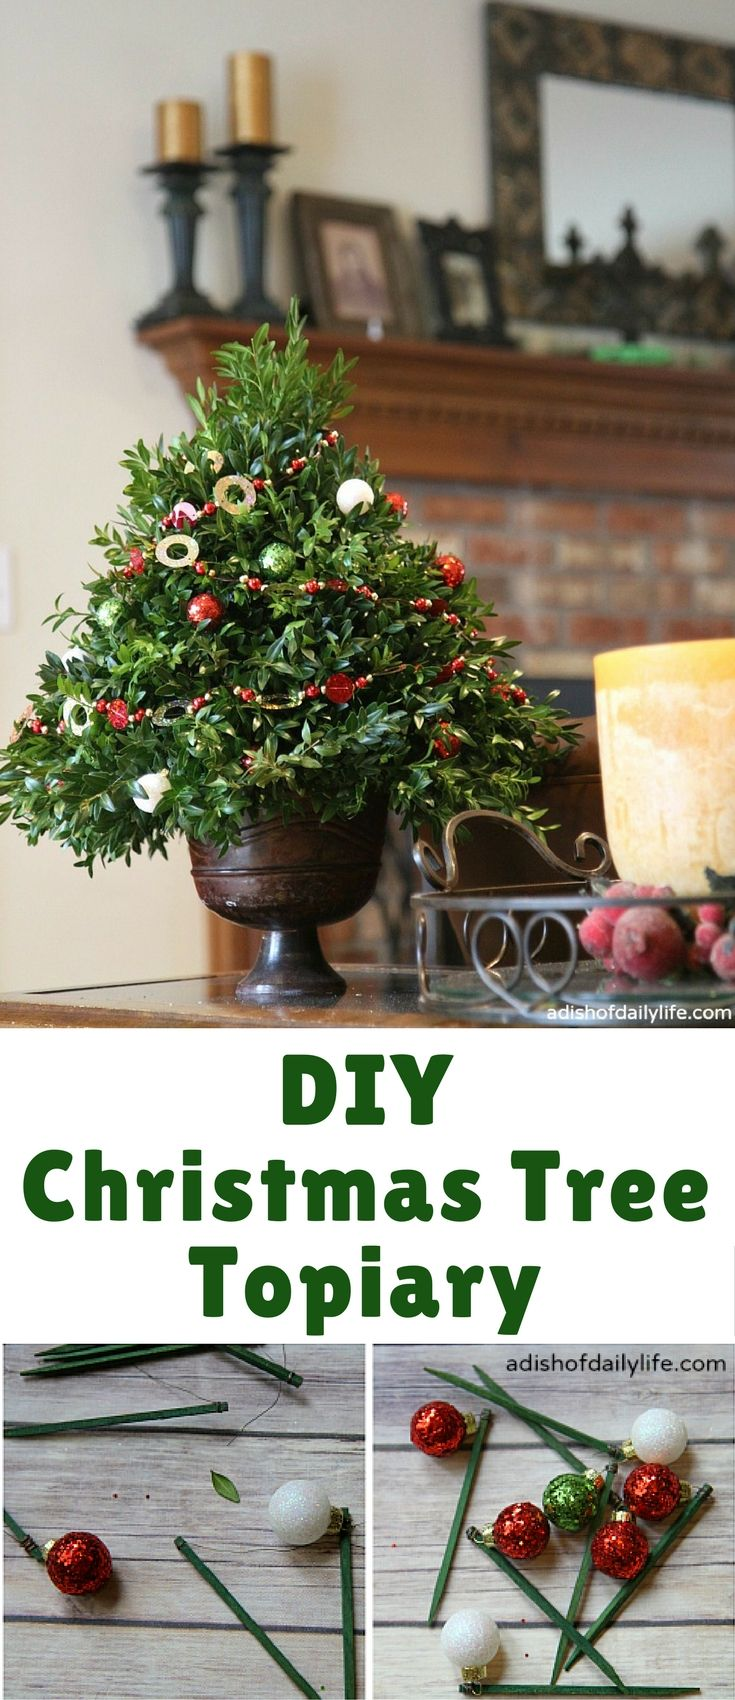 This festive DIY Christmas Tree Topiary is perfect as a hostess gift ...